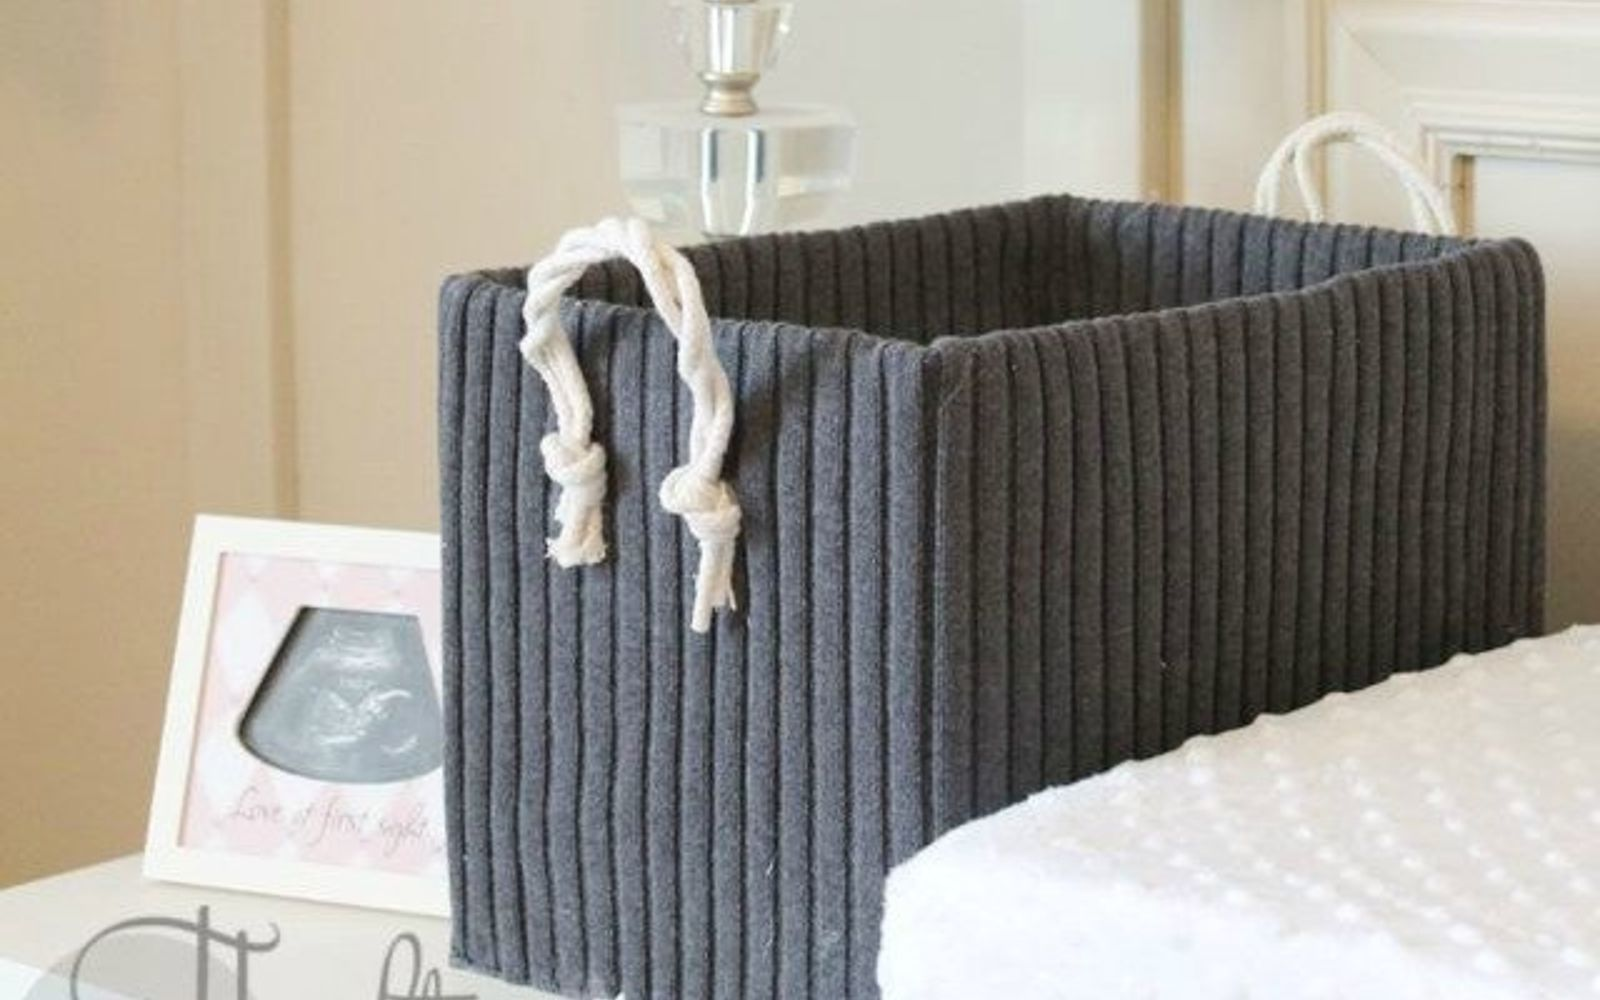 s 15 brilliant ways to reuse your empty cardboard boxes, home decor, repurposing upcycling, Cover It in an Old Sweater for a Cozy Look